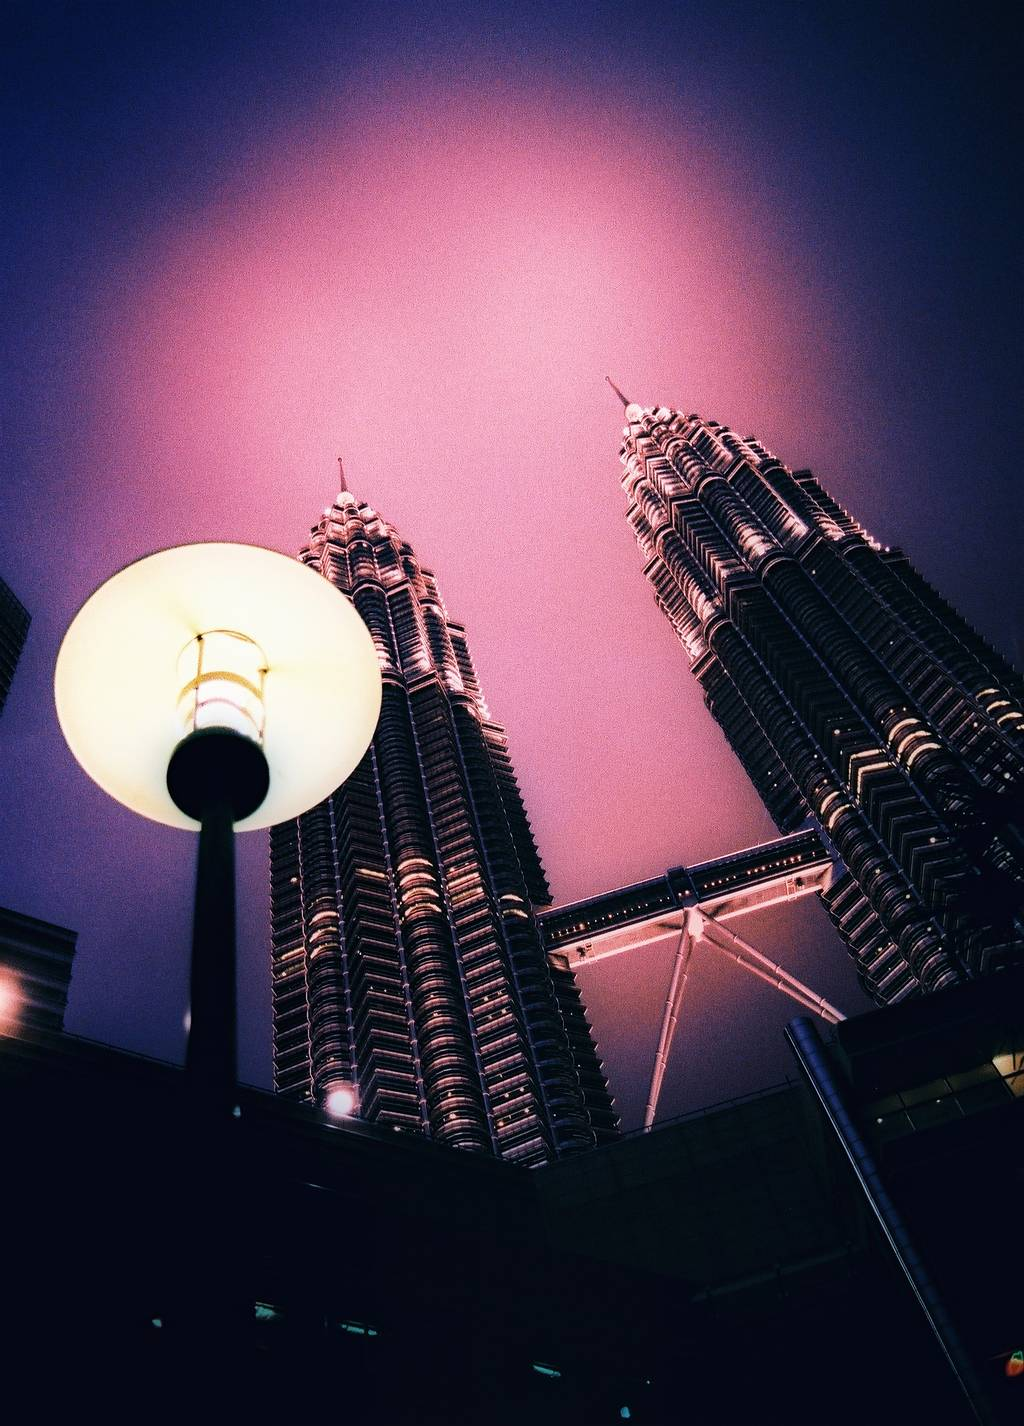 Most Popular Photos of Malaysia – Best of June 2012